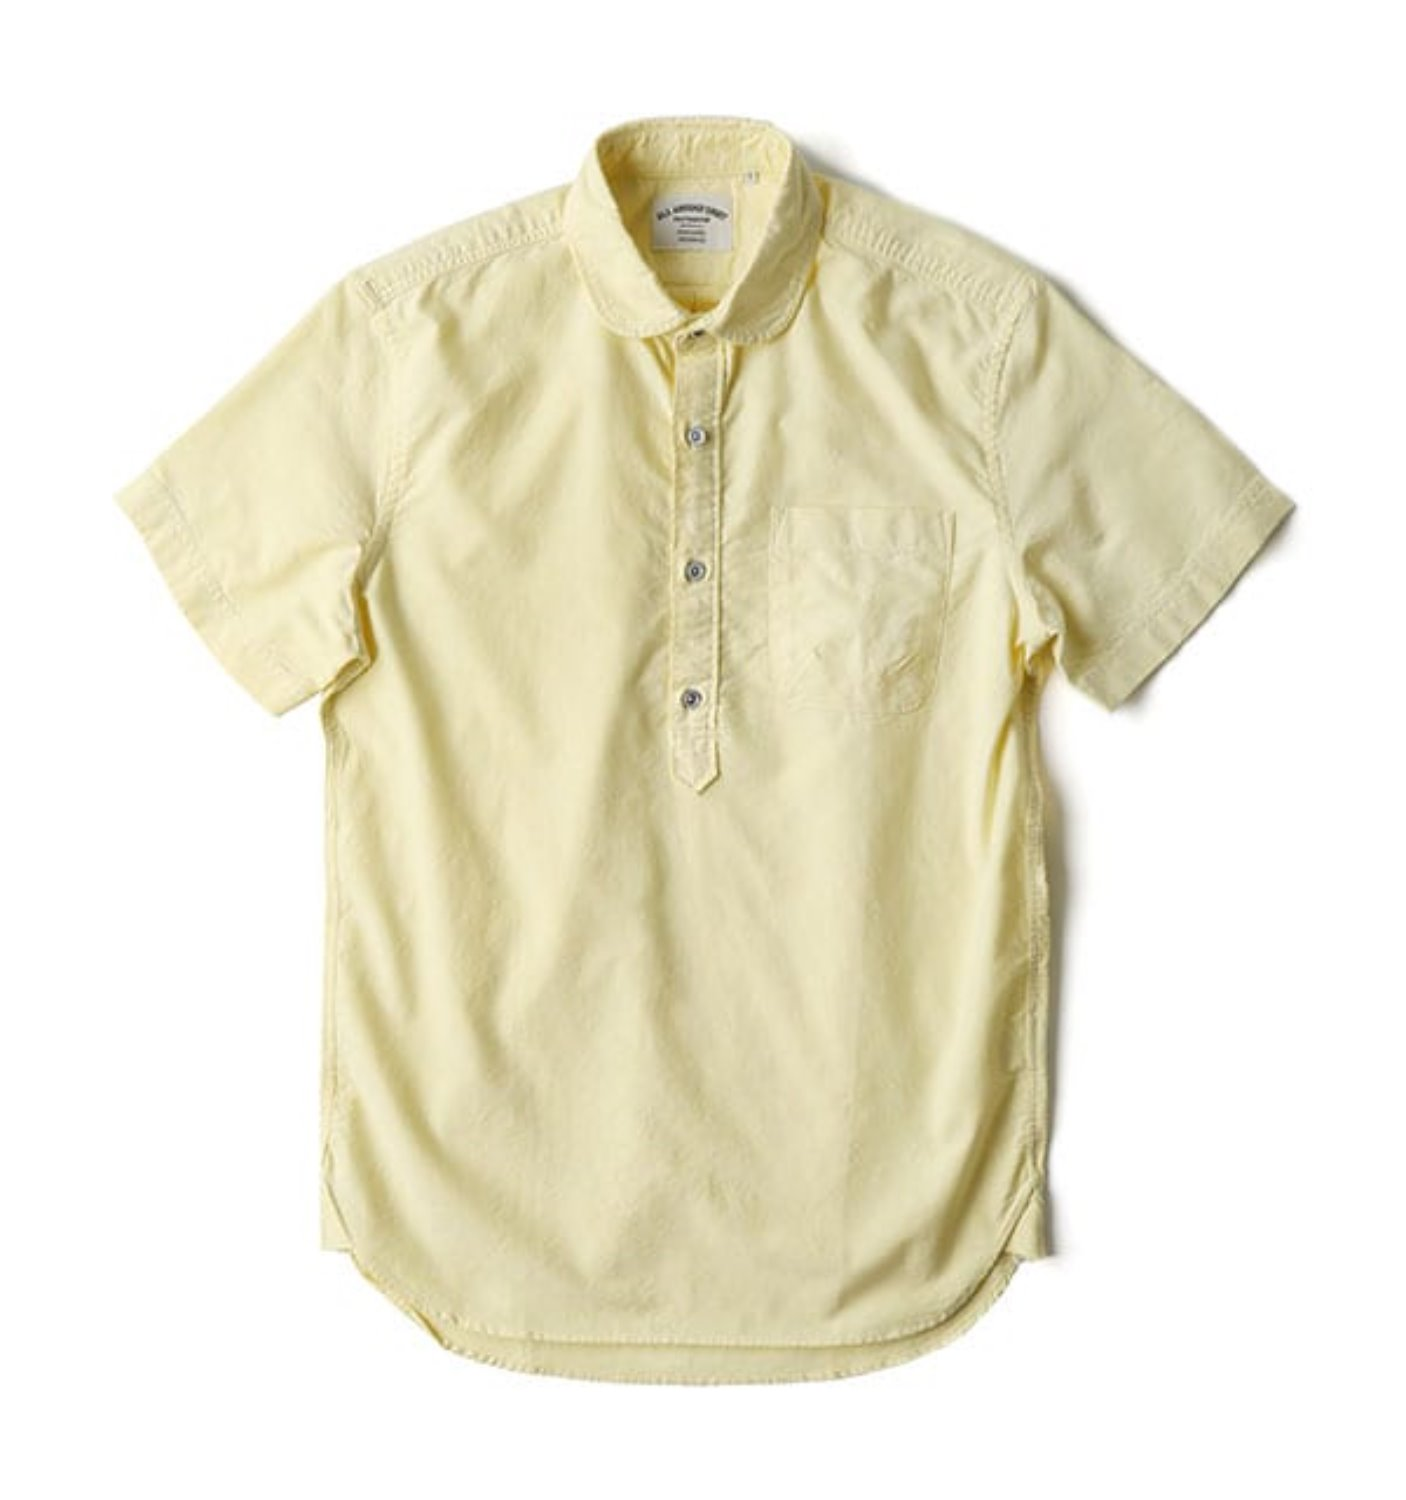 BAS02 LEMON SOLD OXFORD SHIRT